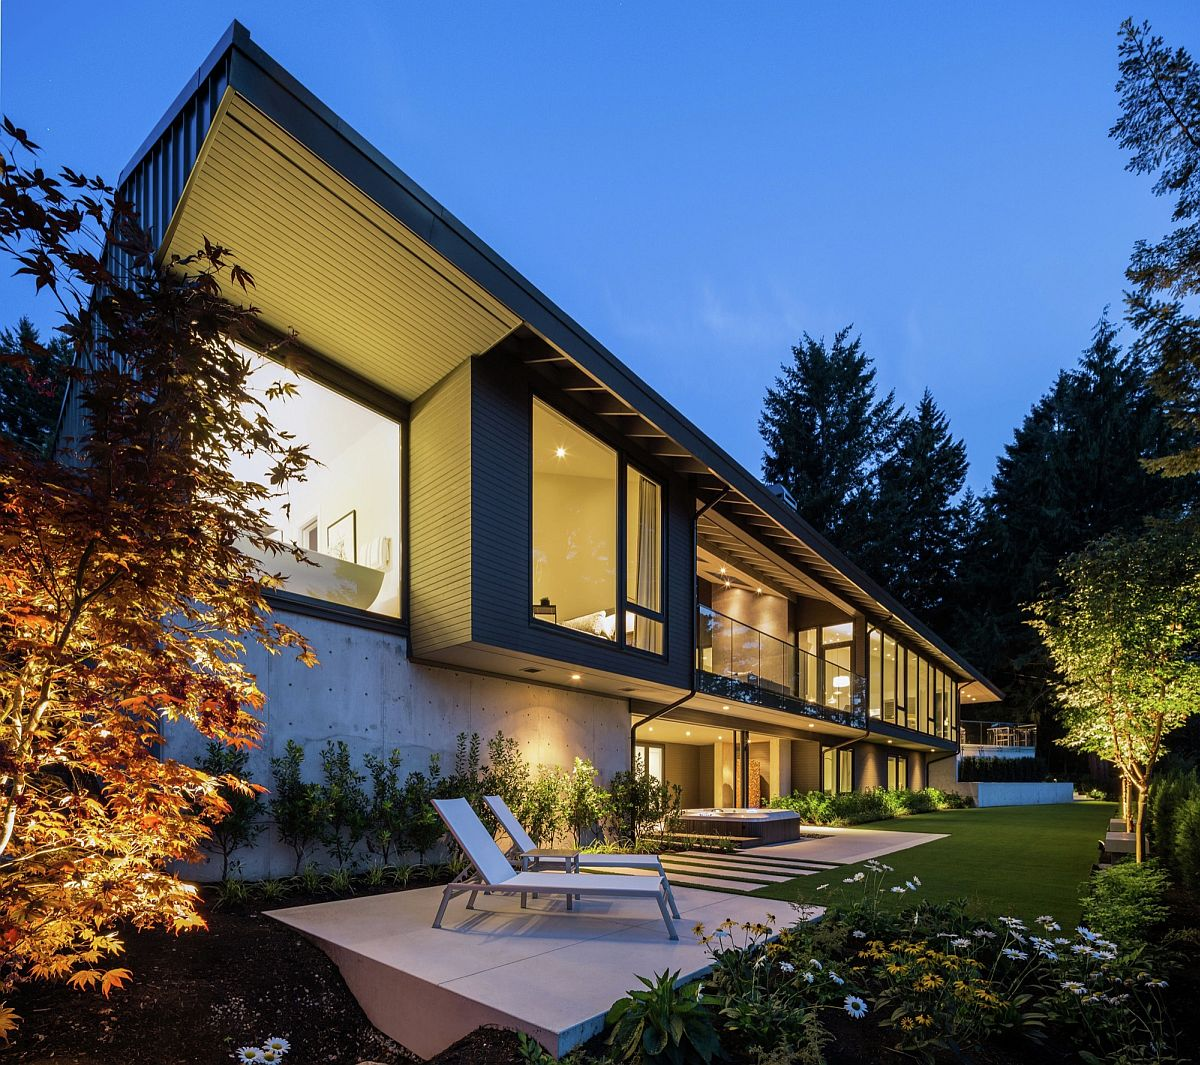 Rear facade of the home opens up to the natural scenery around it